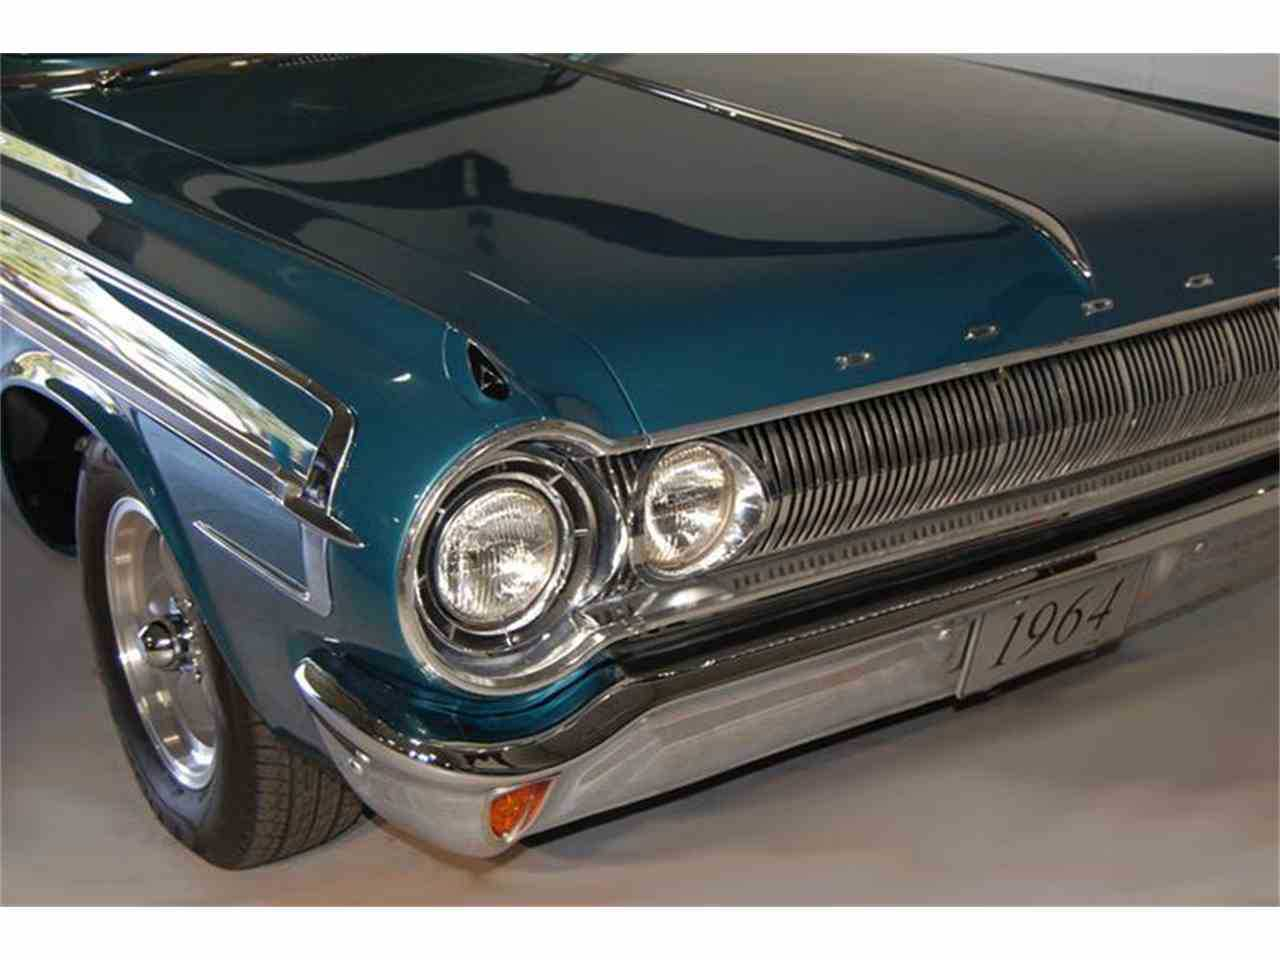 1964 Dodge Polara For Sale In Rogers Mn Max Wedge